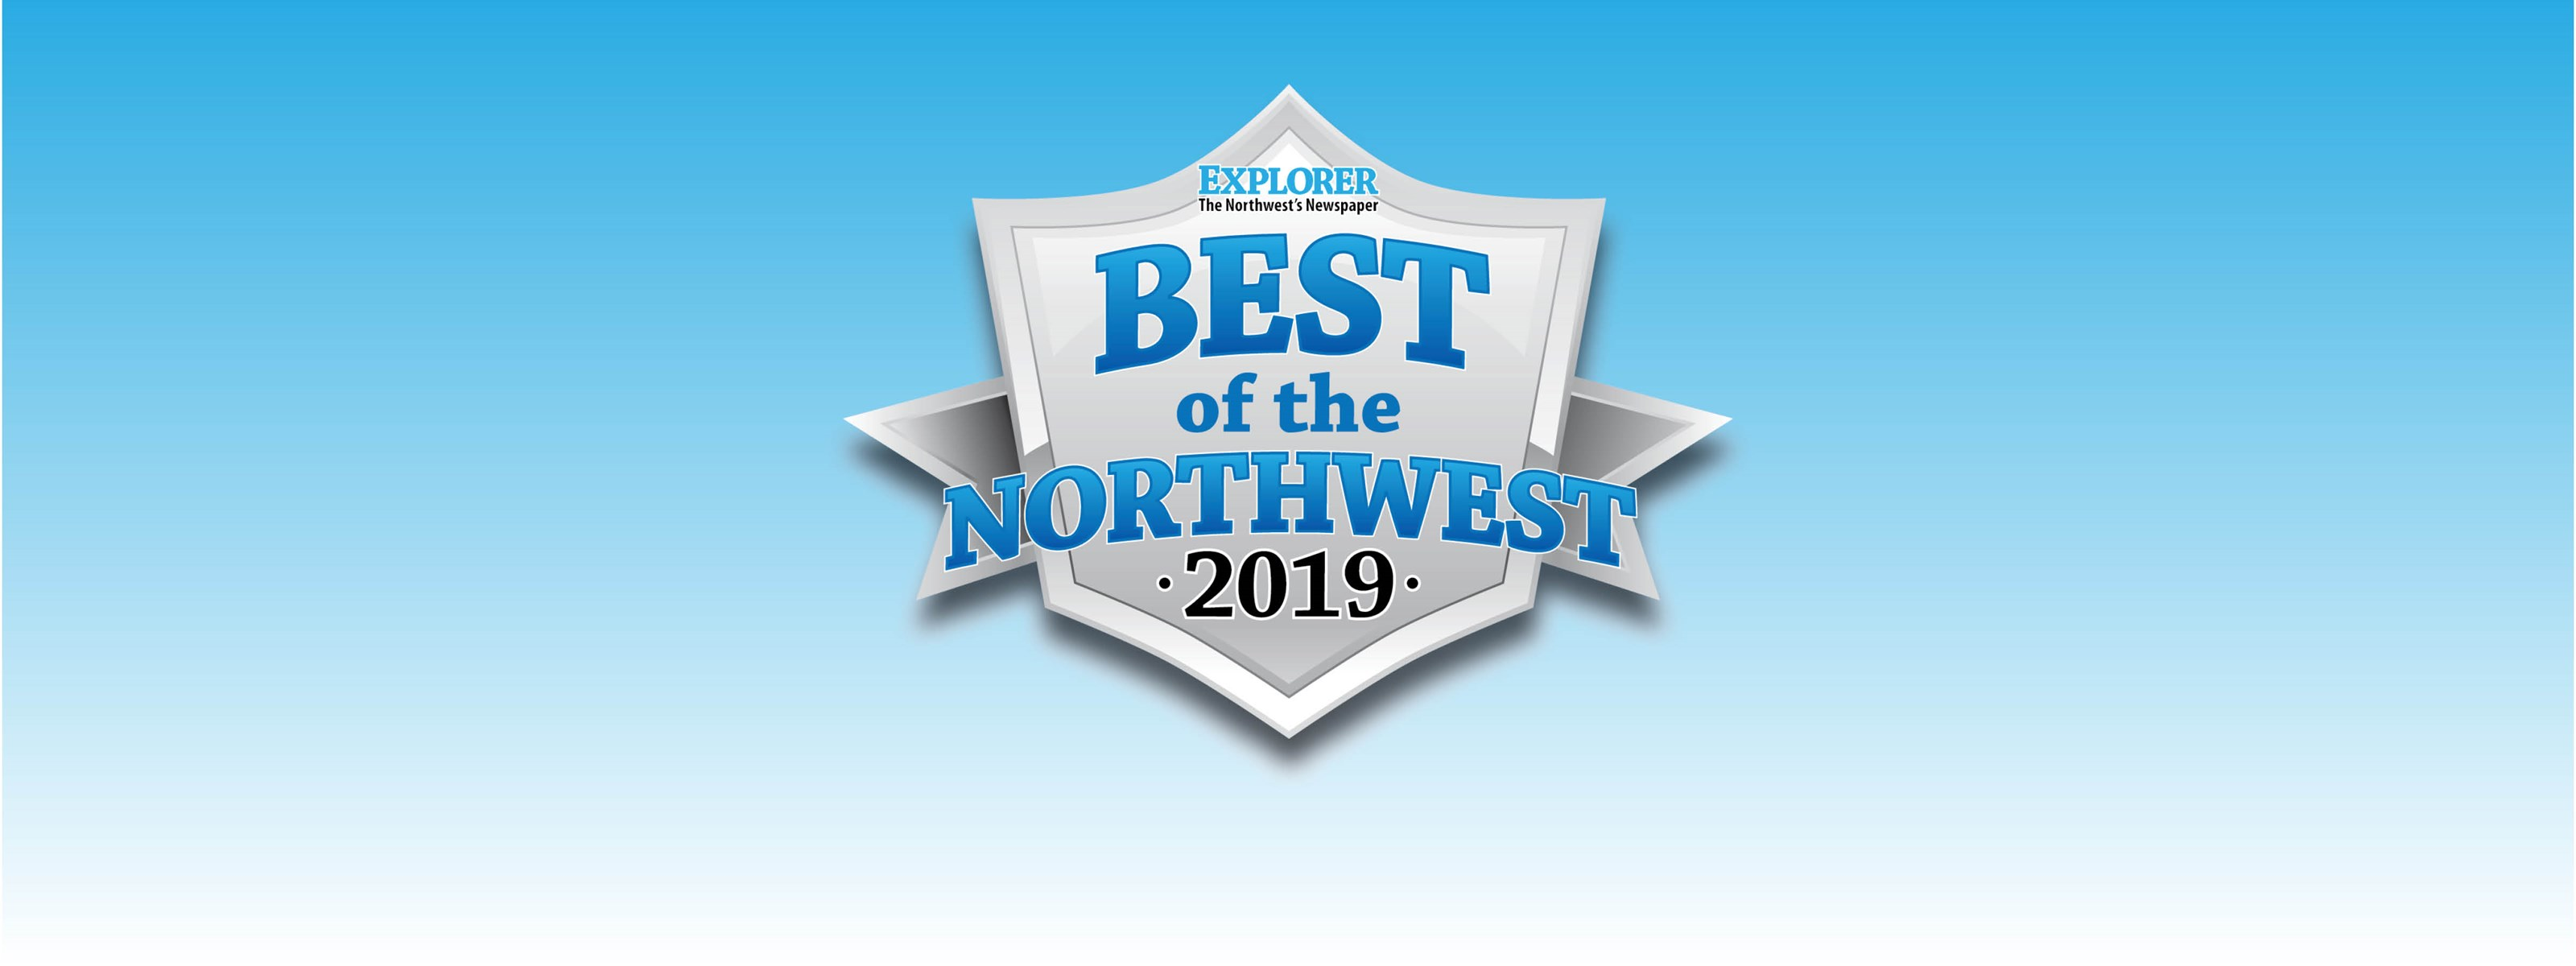 Best Of The Northwest 2019 Best of the Northwest 2019